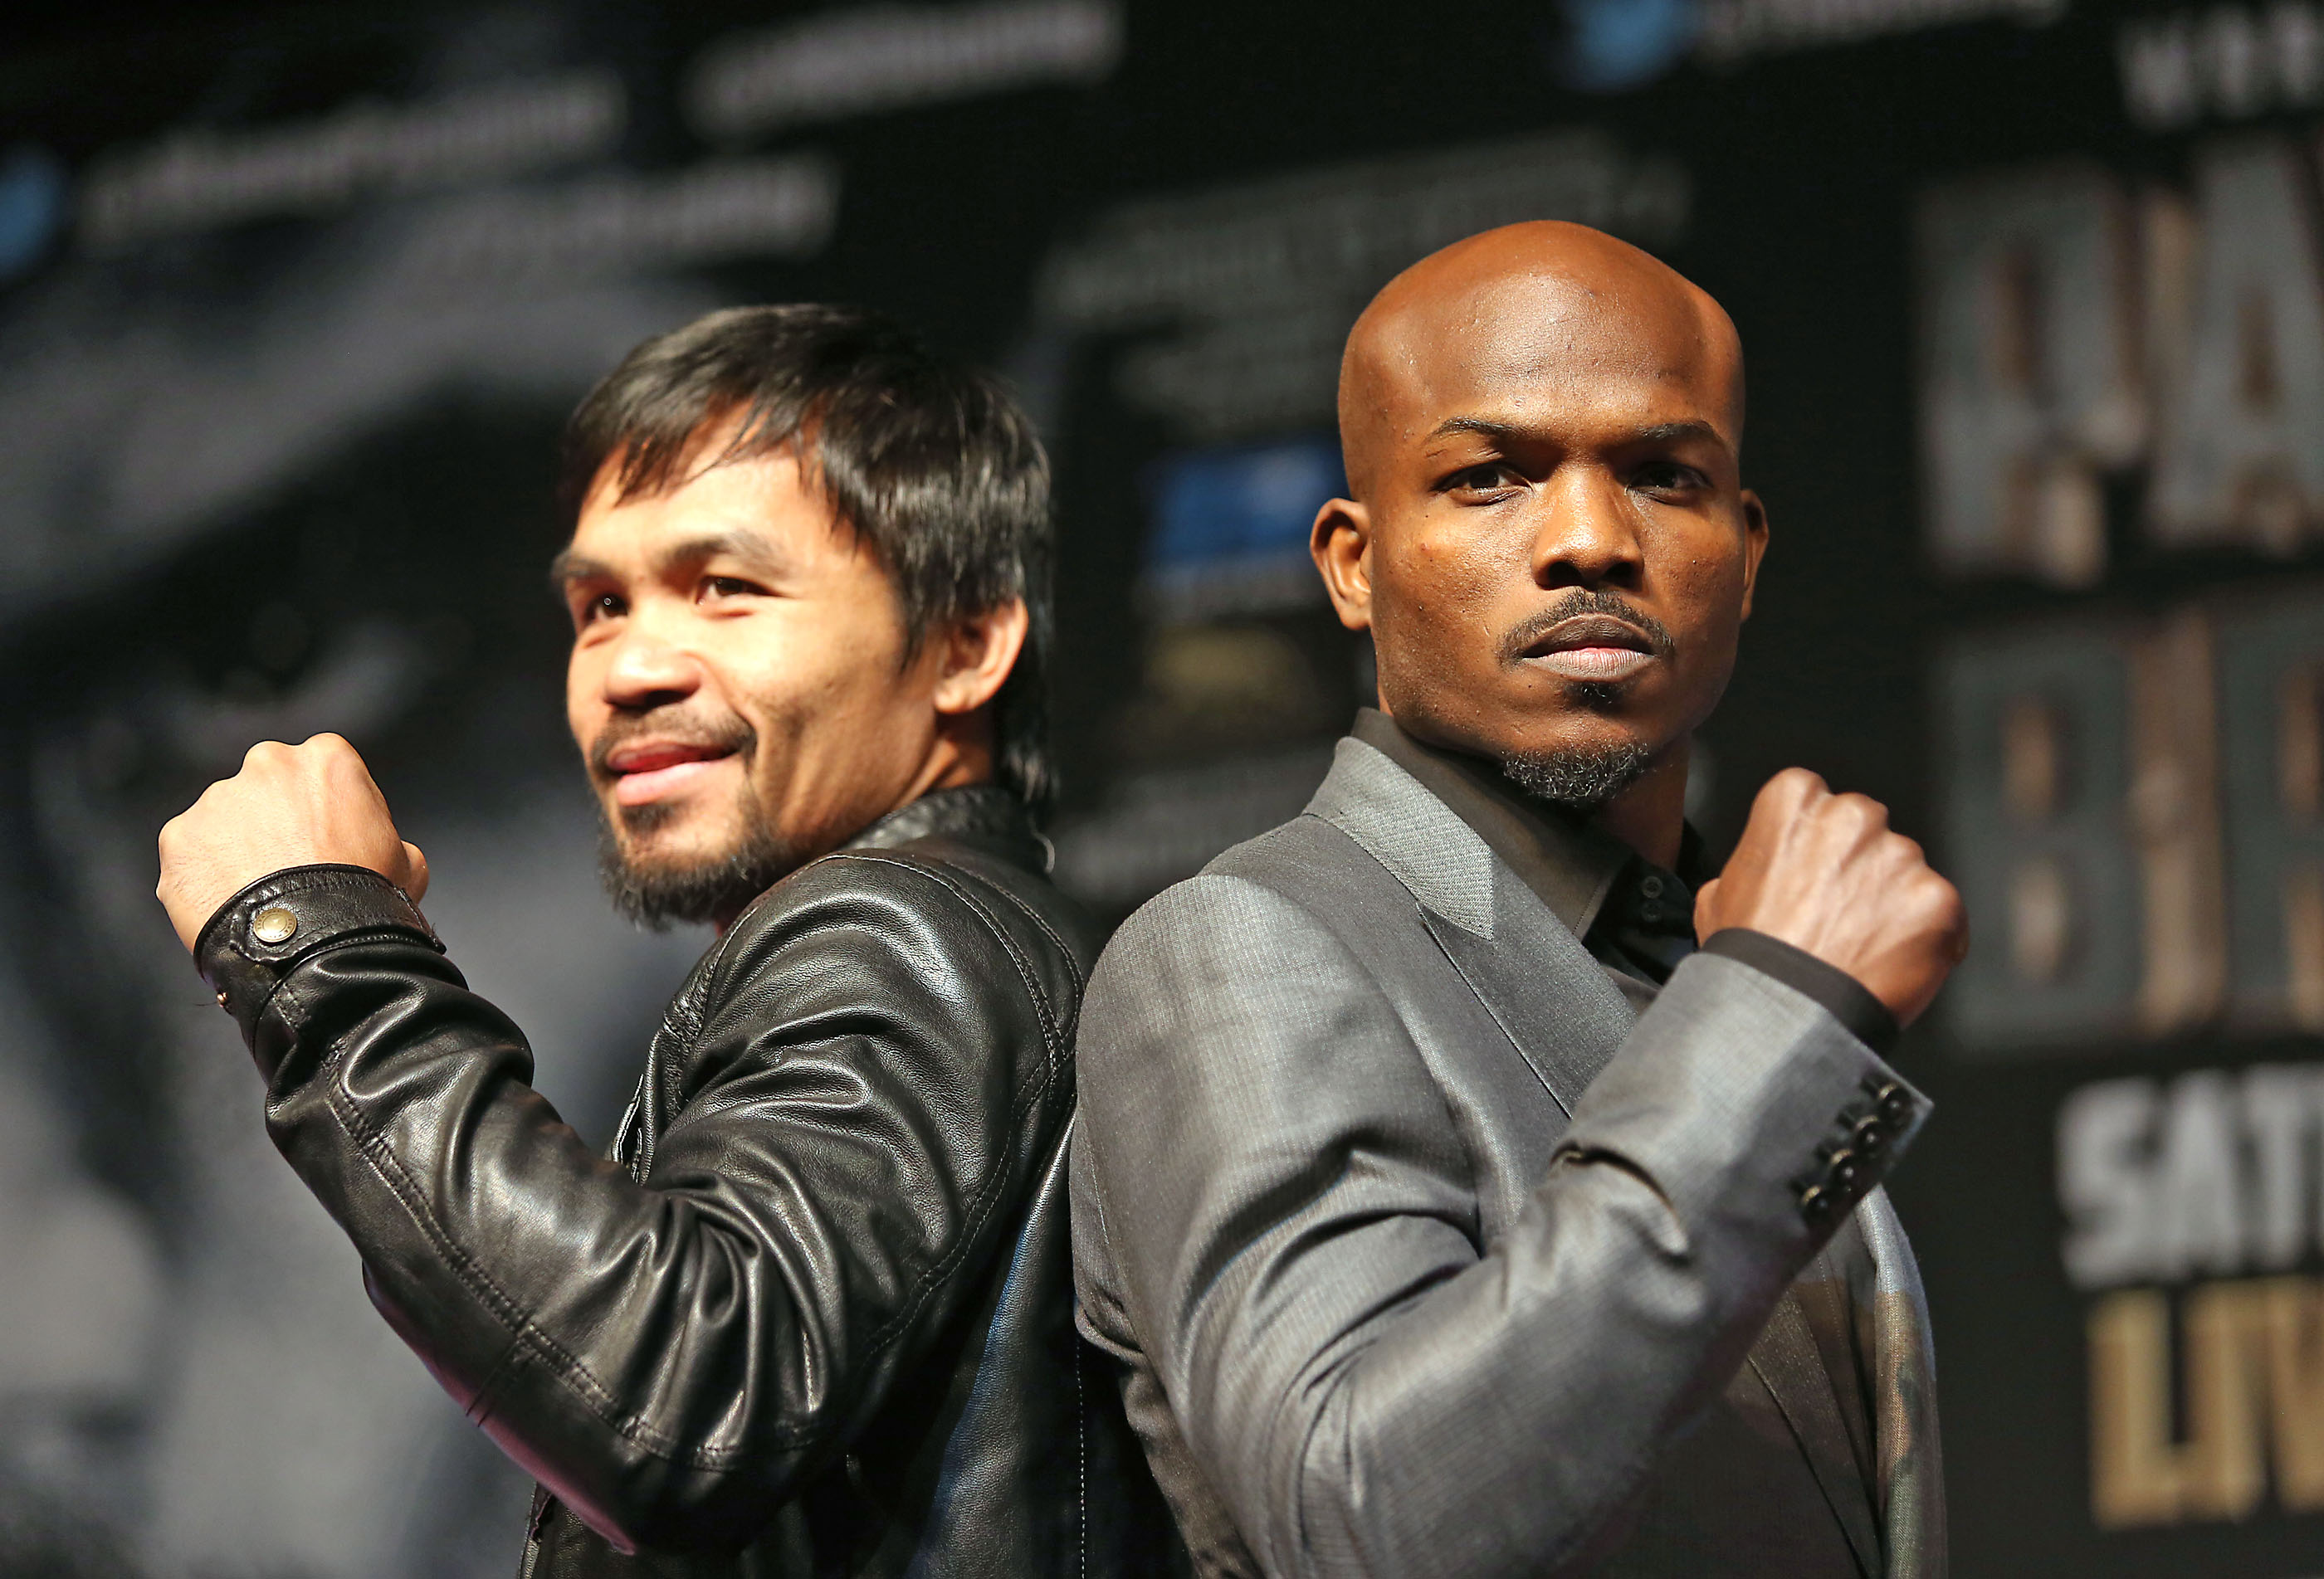 ¿Cuánto mide Manny Pacquiao? - Altura - Real height Floyd-Mayweather-y-Manny-Pacquiao